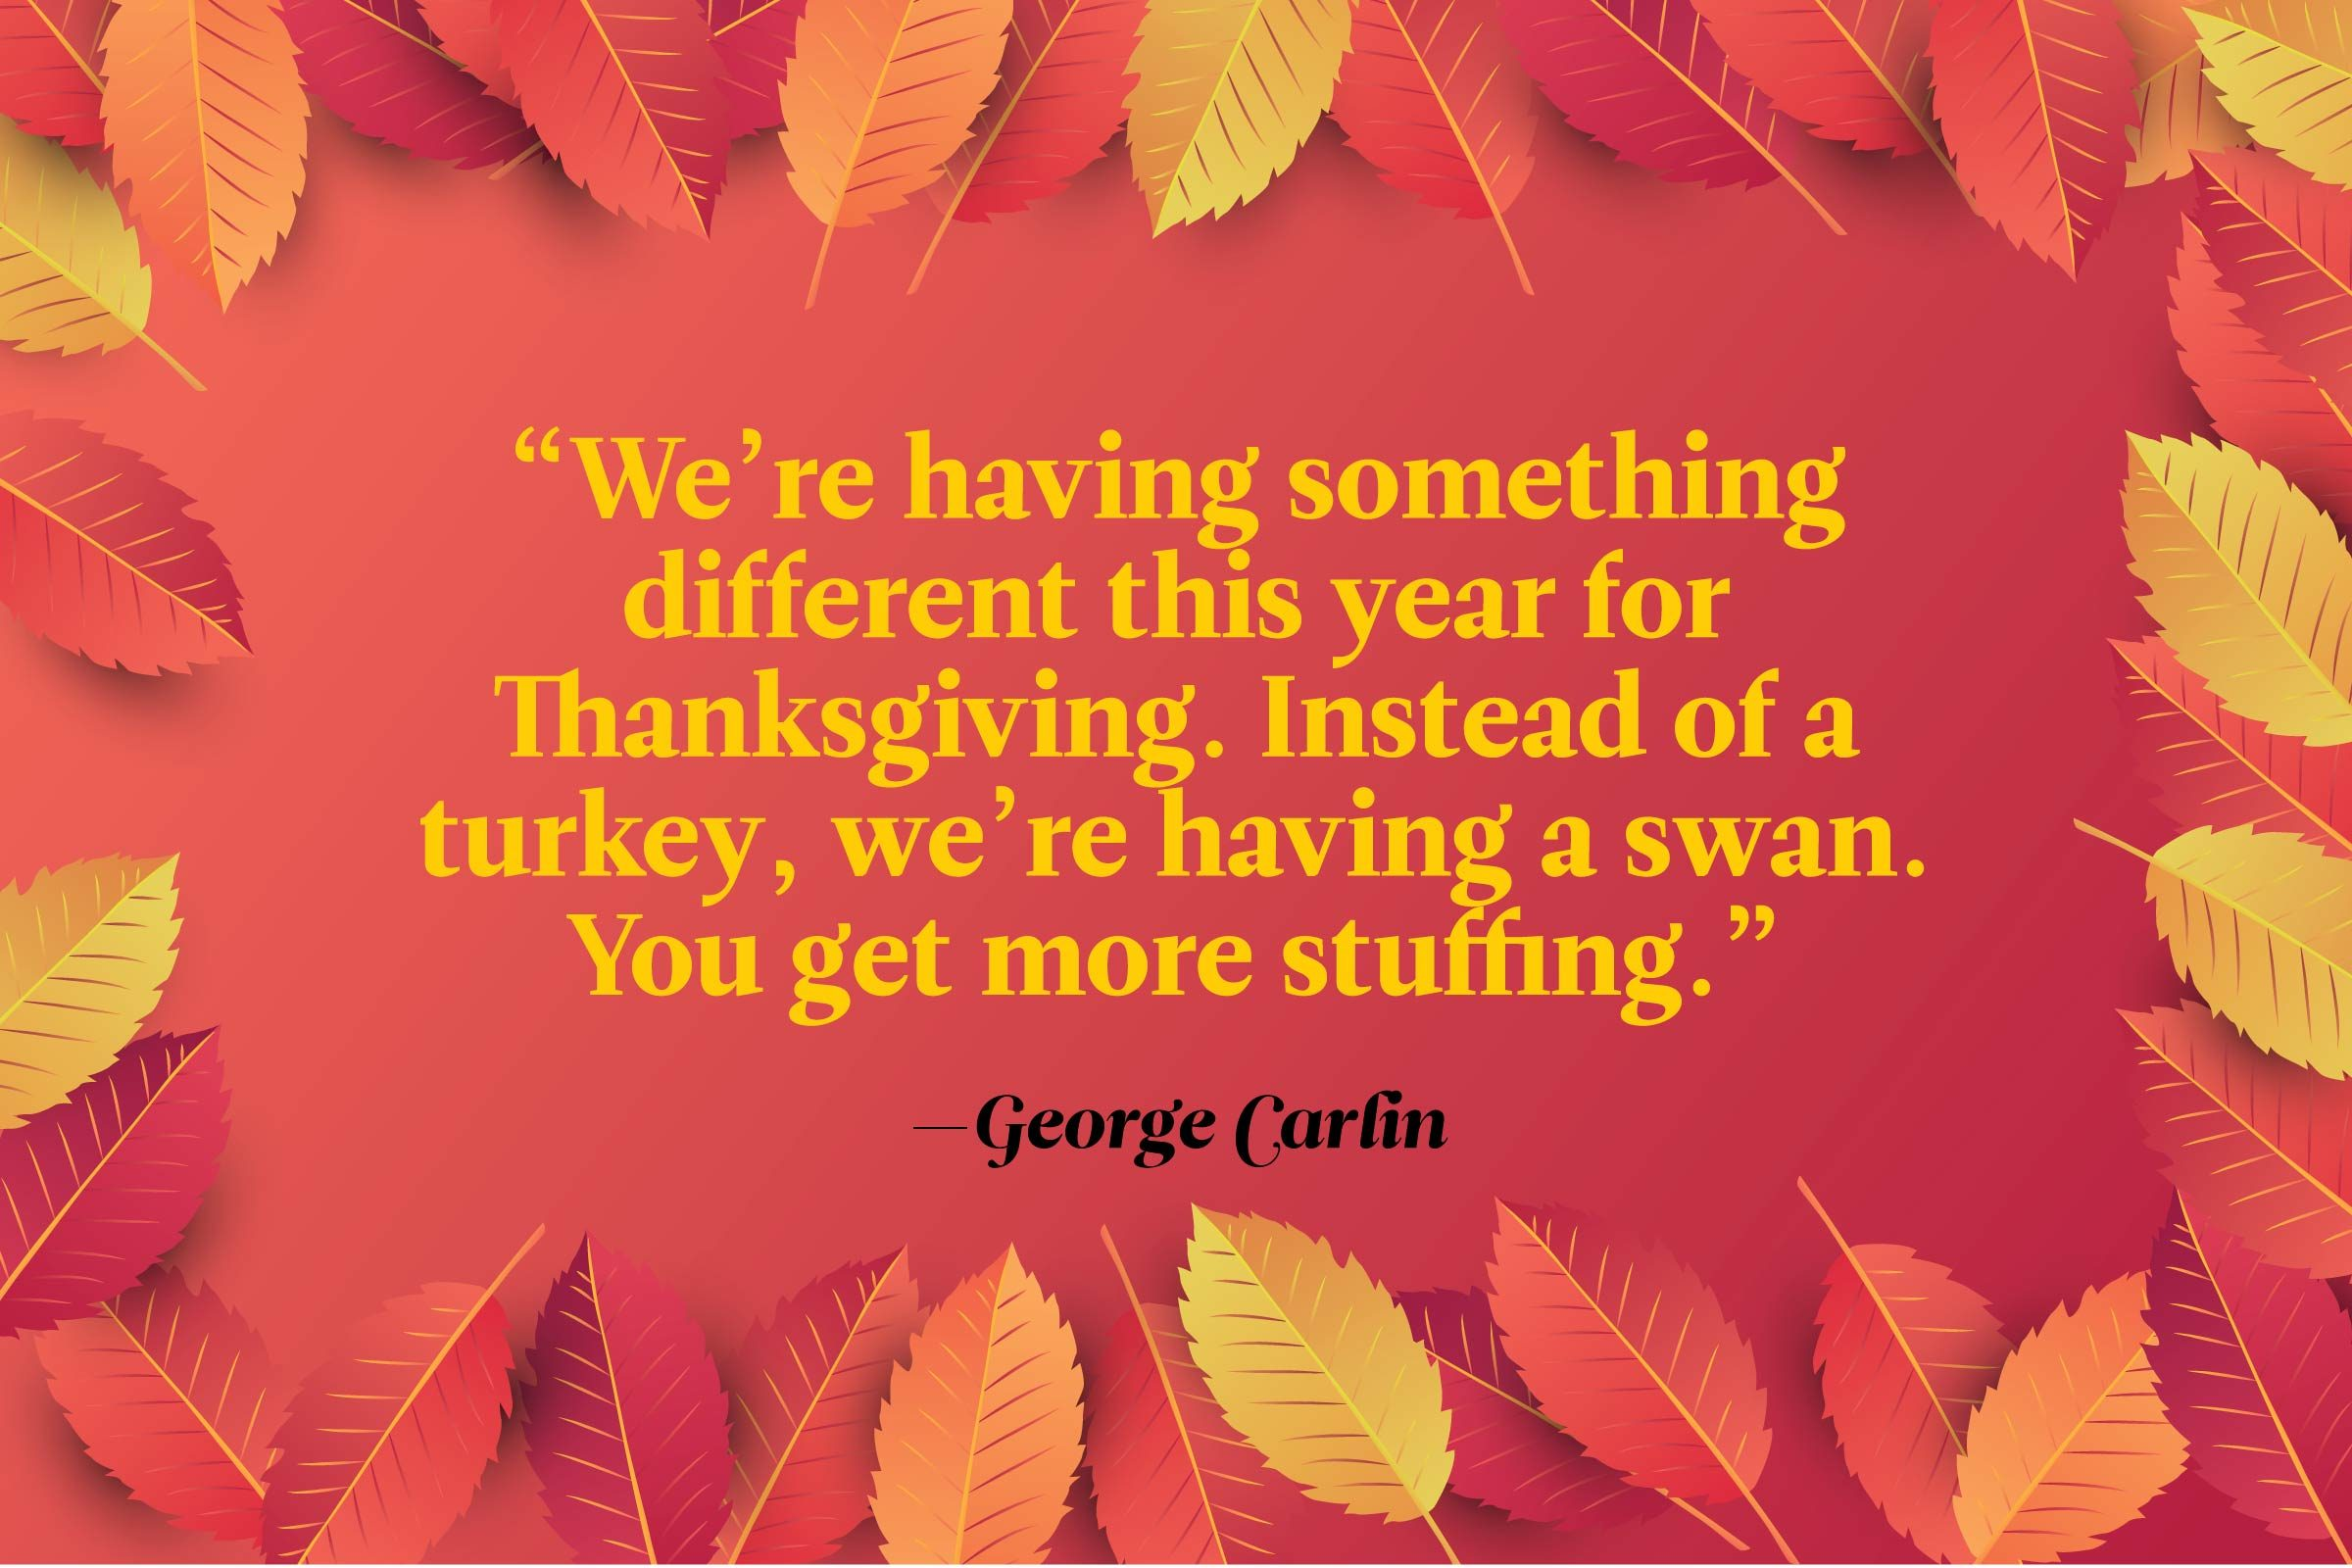 Funny Thanksgiving Quotes - George Carlin